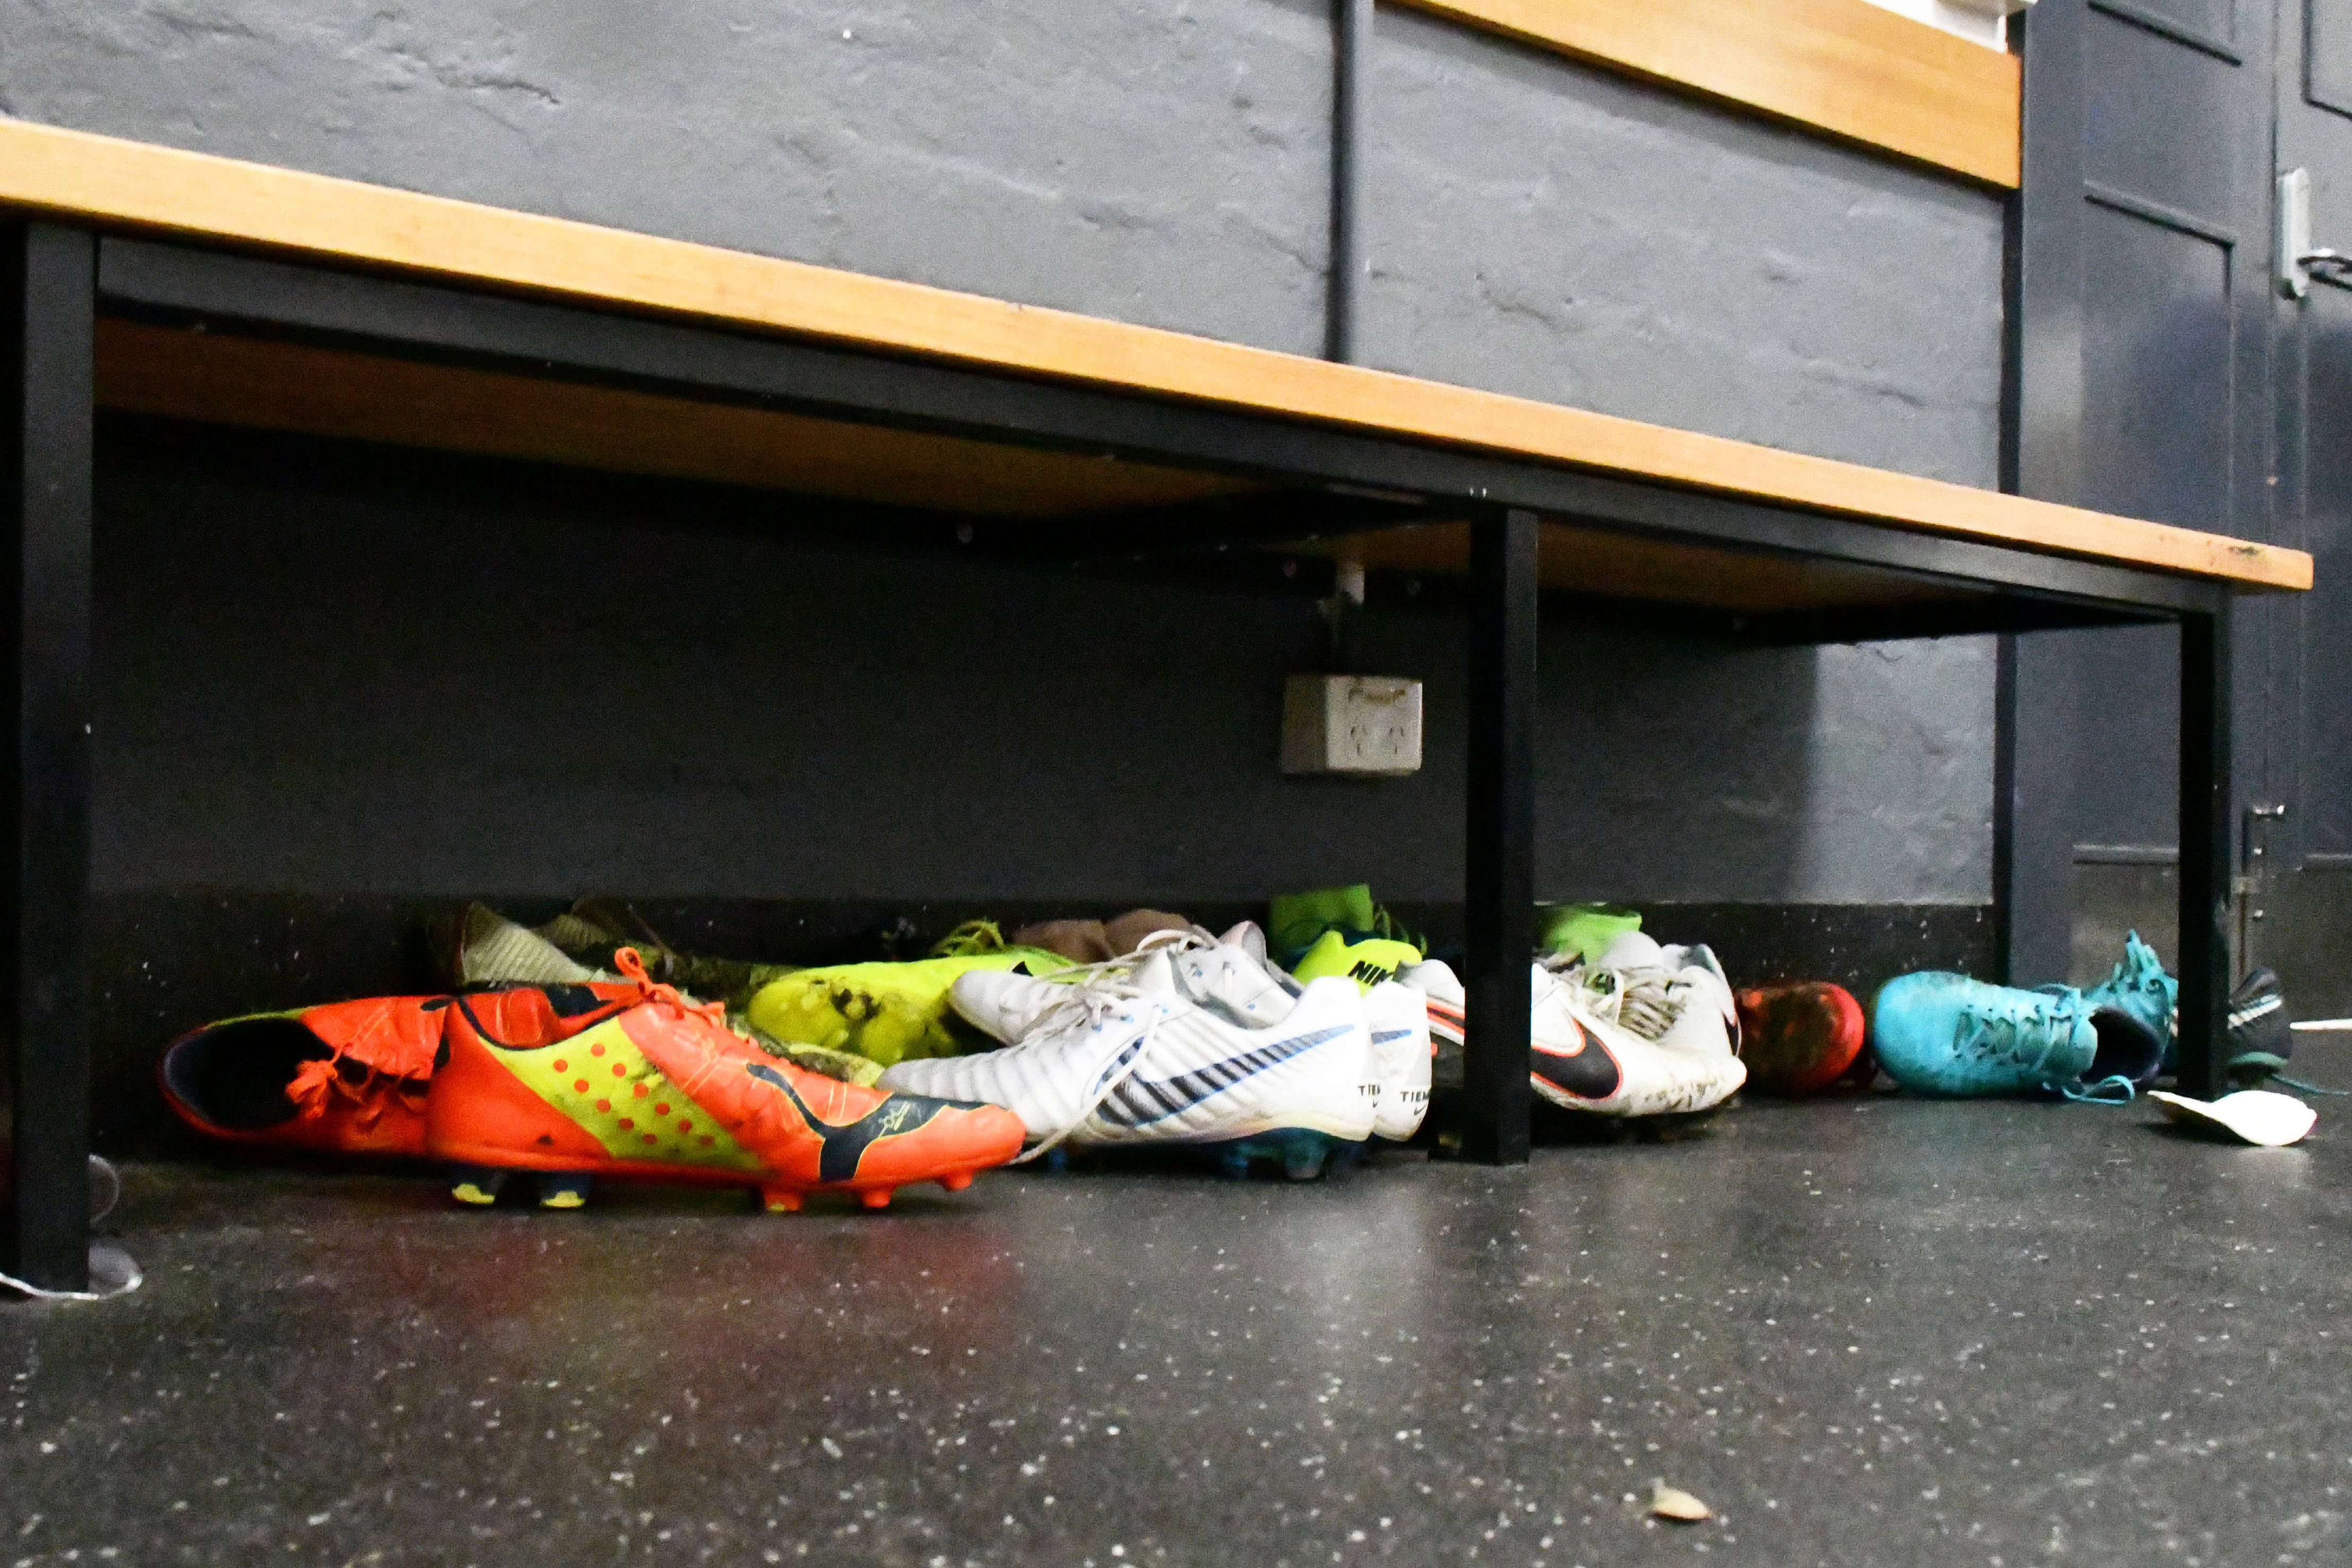 Port Melbourne players leave their boots under a bench in the change rooms after a Thursday night training session at North Port Oval.